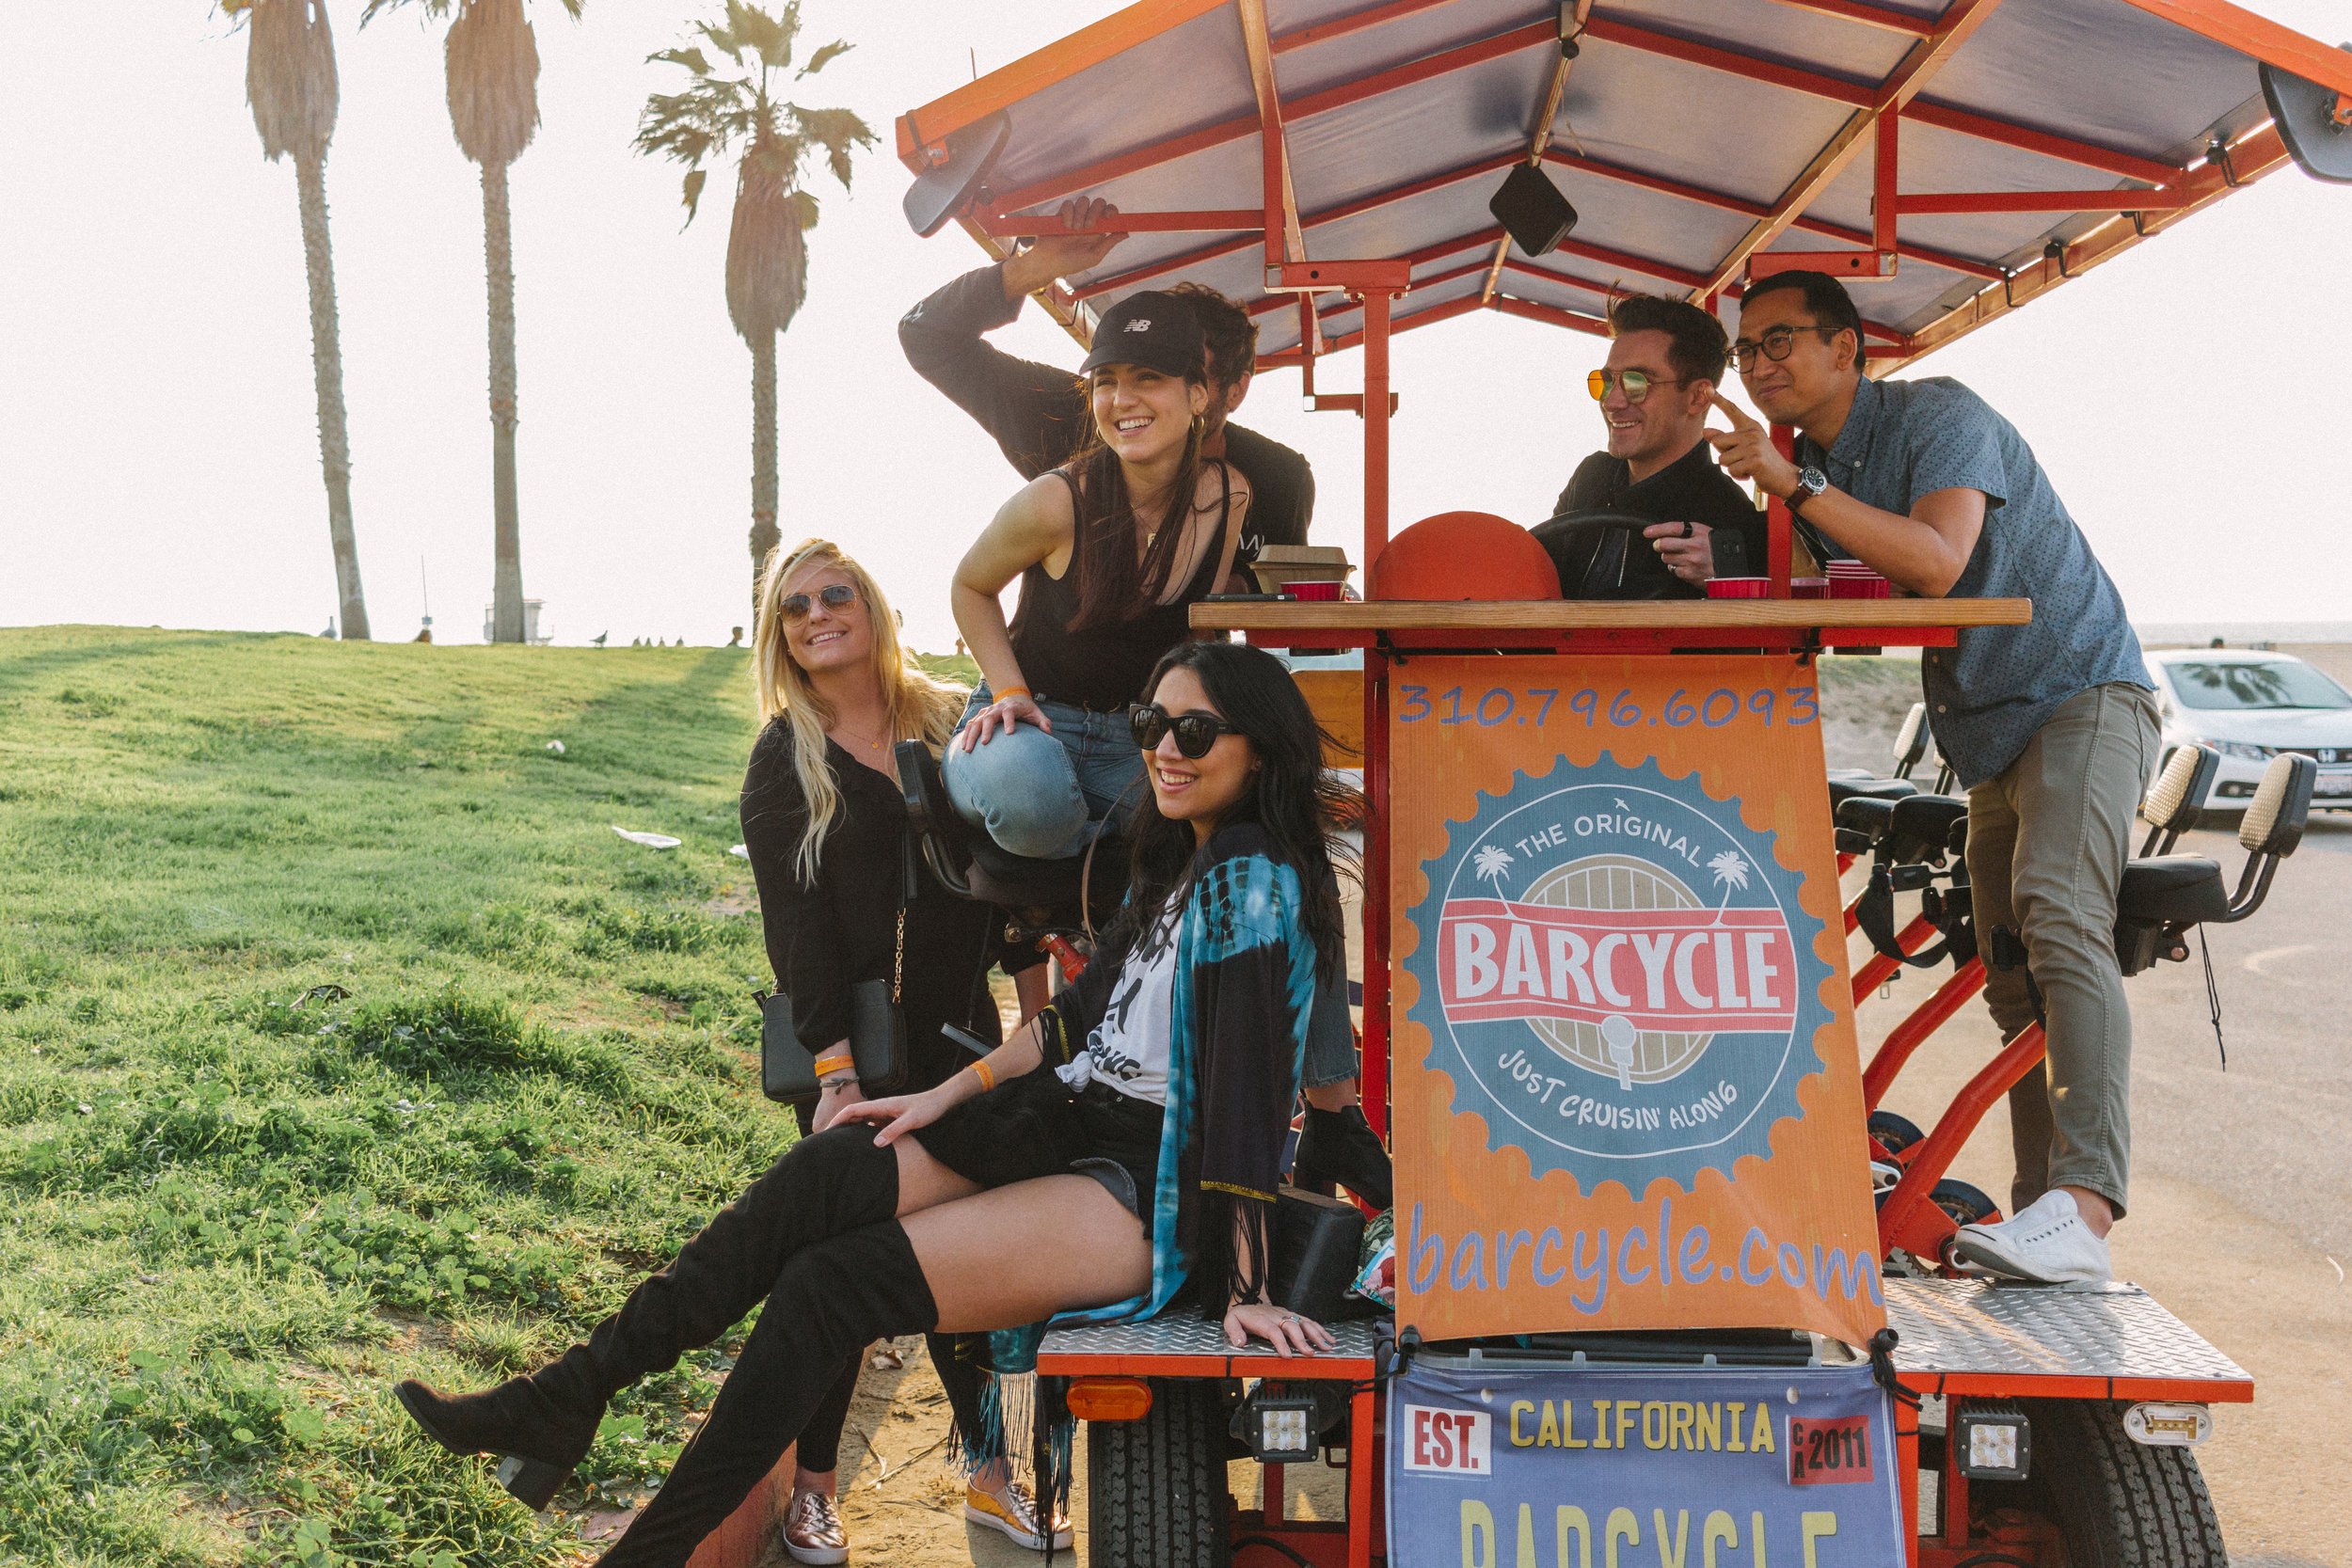 barcycle 6